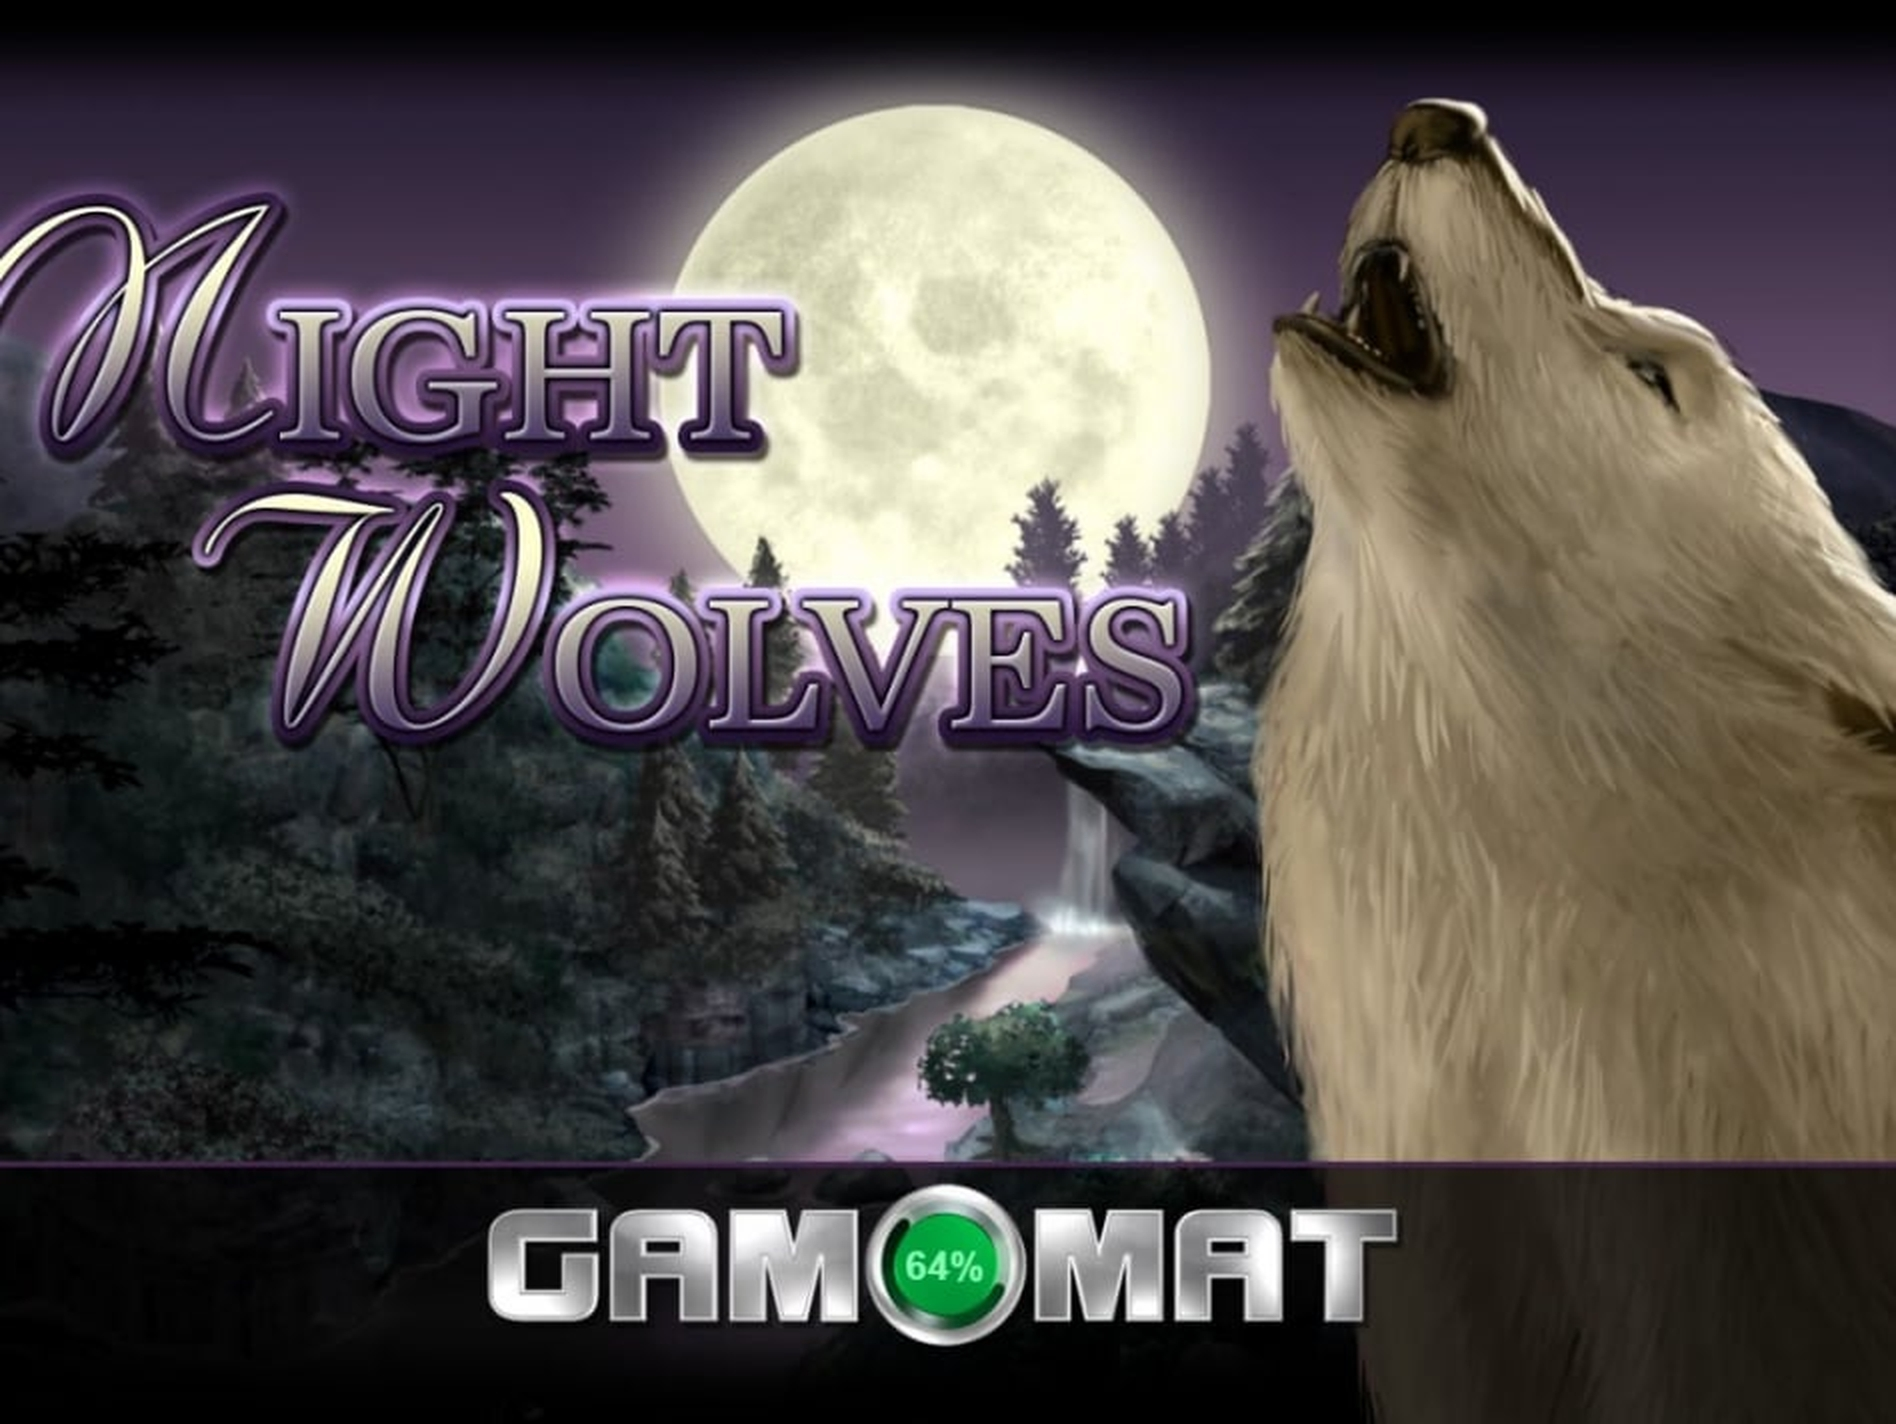 The Night Wolves Online Slot Demo Game by Gamomat